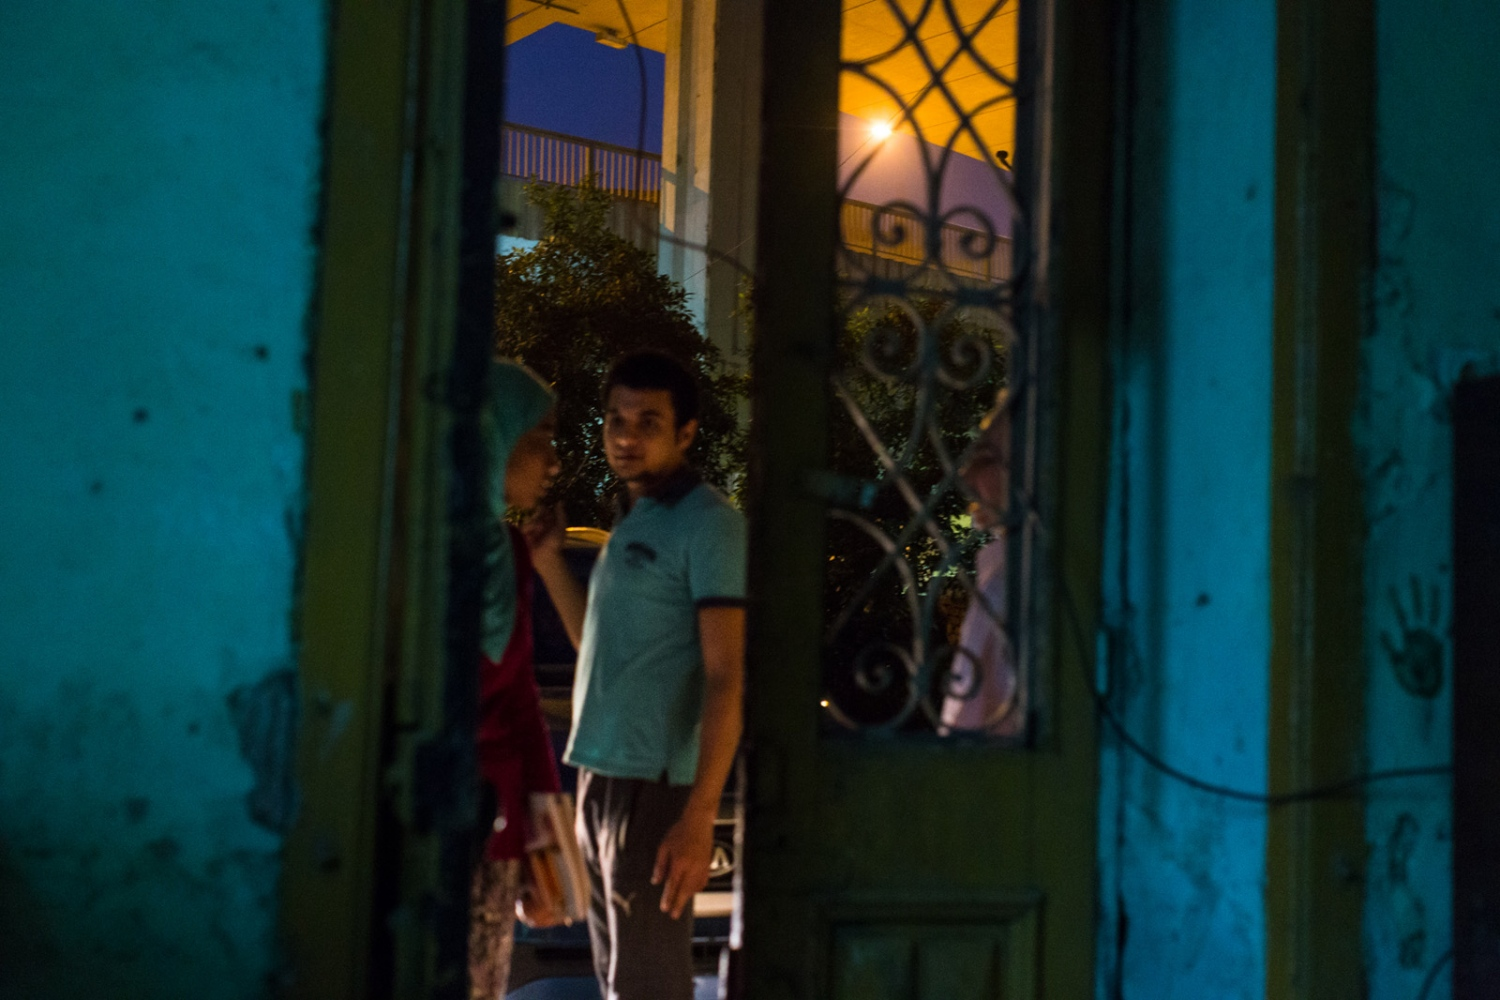 p.p1 {margin: 0.0px 0.0px 0.0px 0.0px; font: 10.0px 'Lucida Grande'} Mostafa sees the kids off as they leave his house after the lesson on Saturday night. Mish Madrasa is a grassroots volunteer group that provides tutoring and after school activities to poor children in Saft el Laban, a slum neighborhood of Cairo.